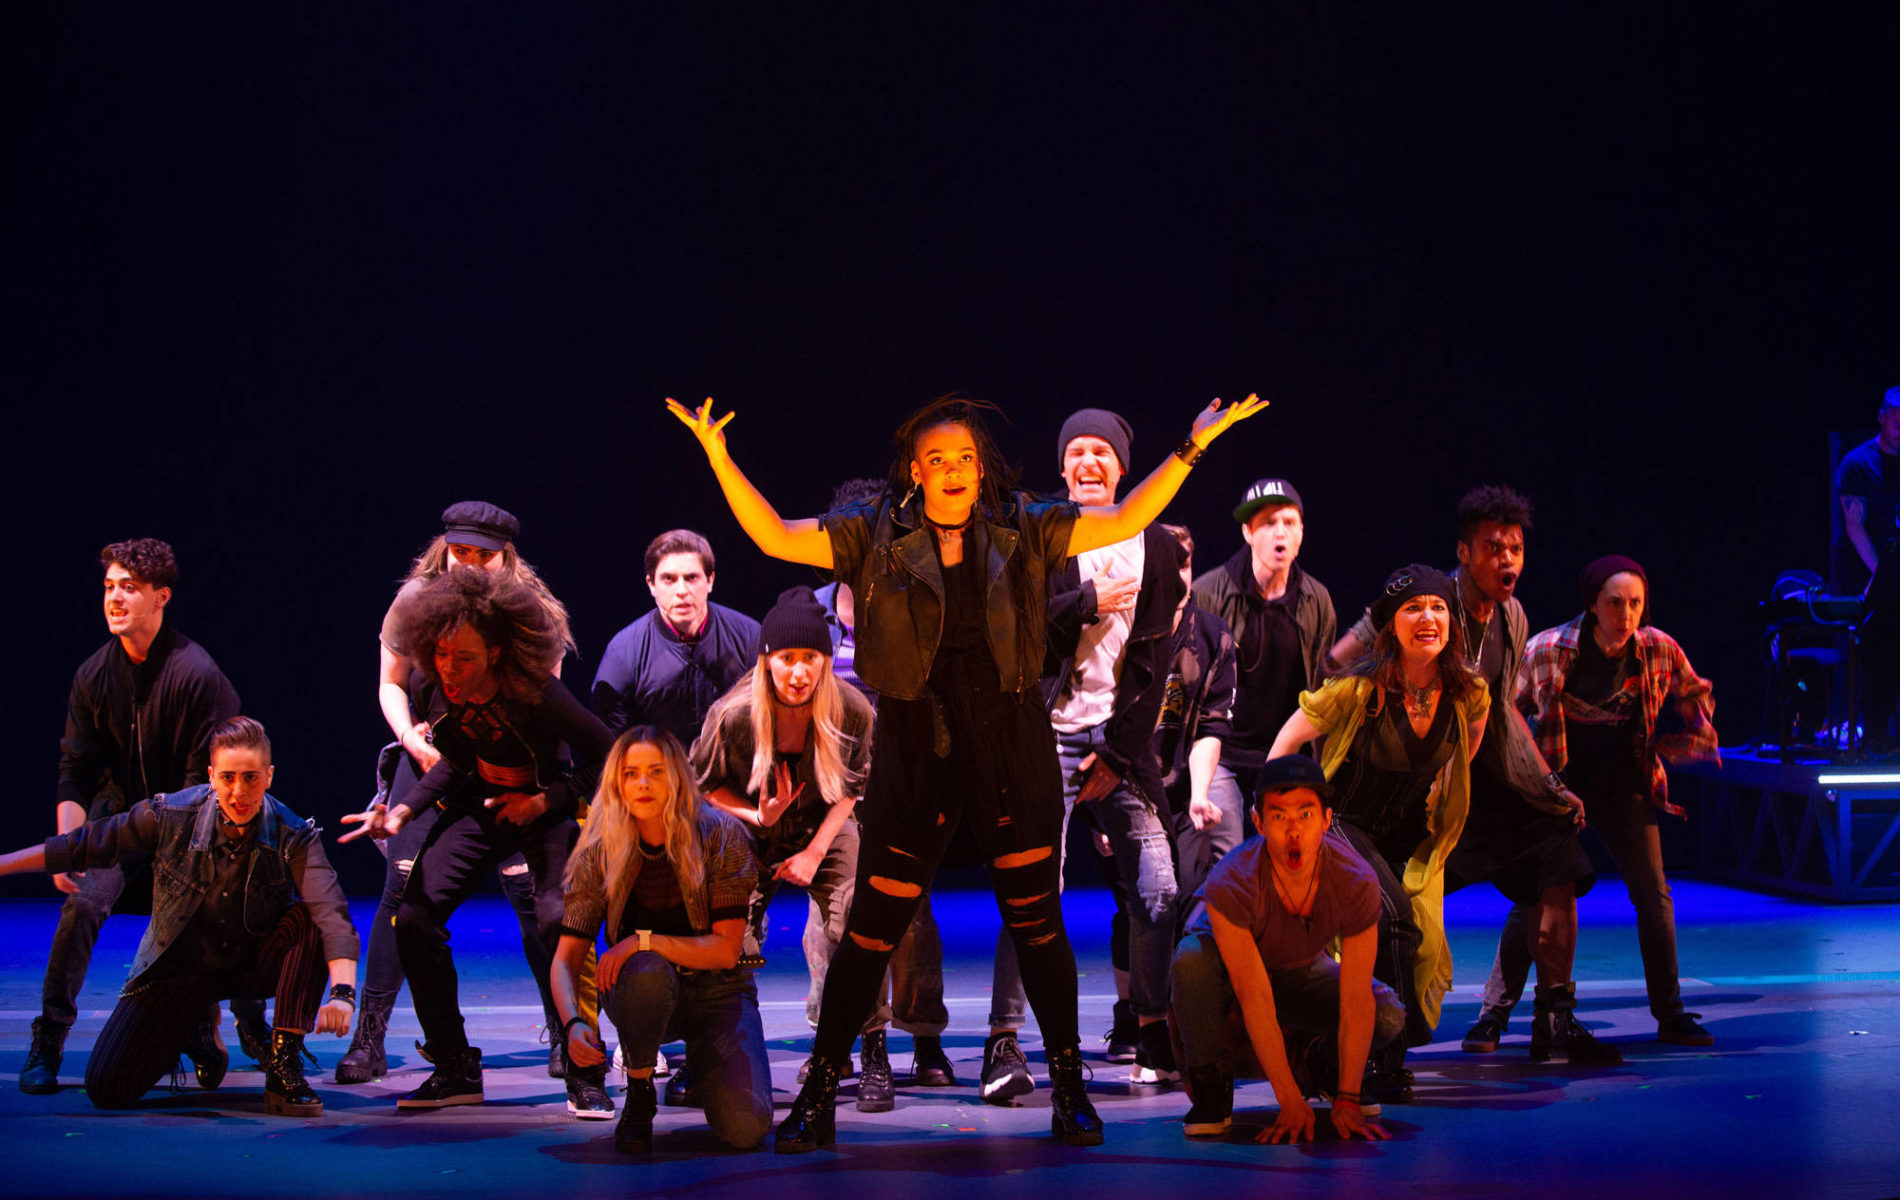 Cast performing on stage with blue lights and black background